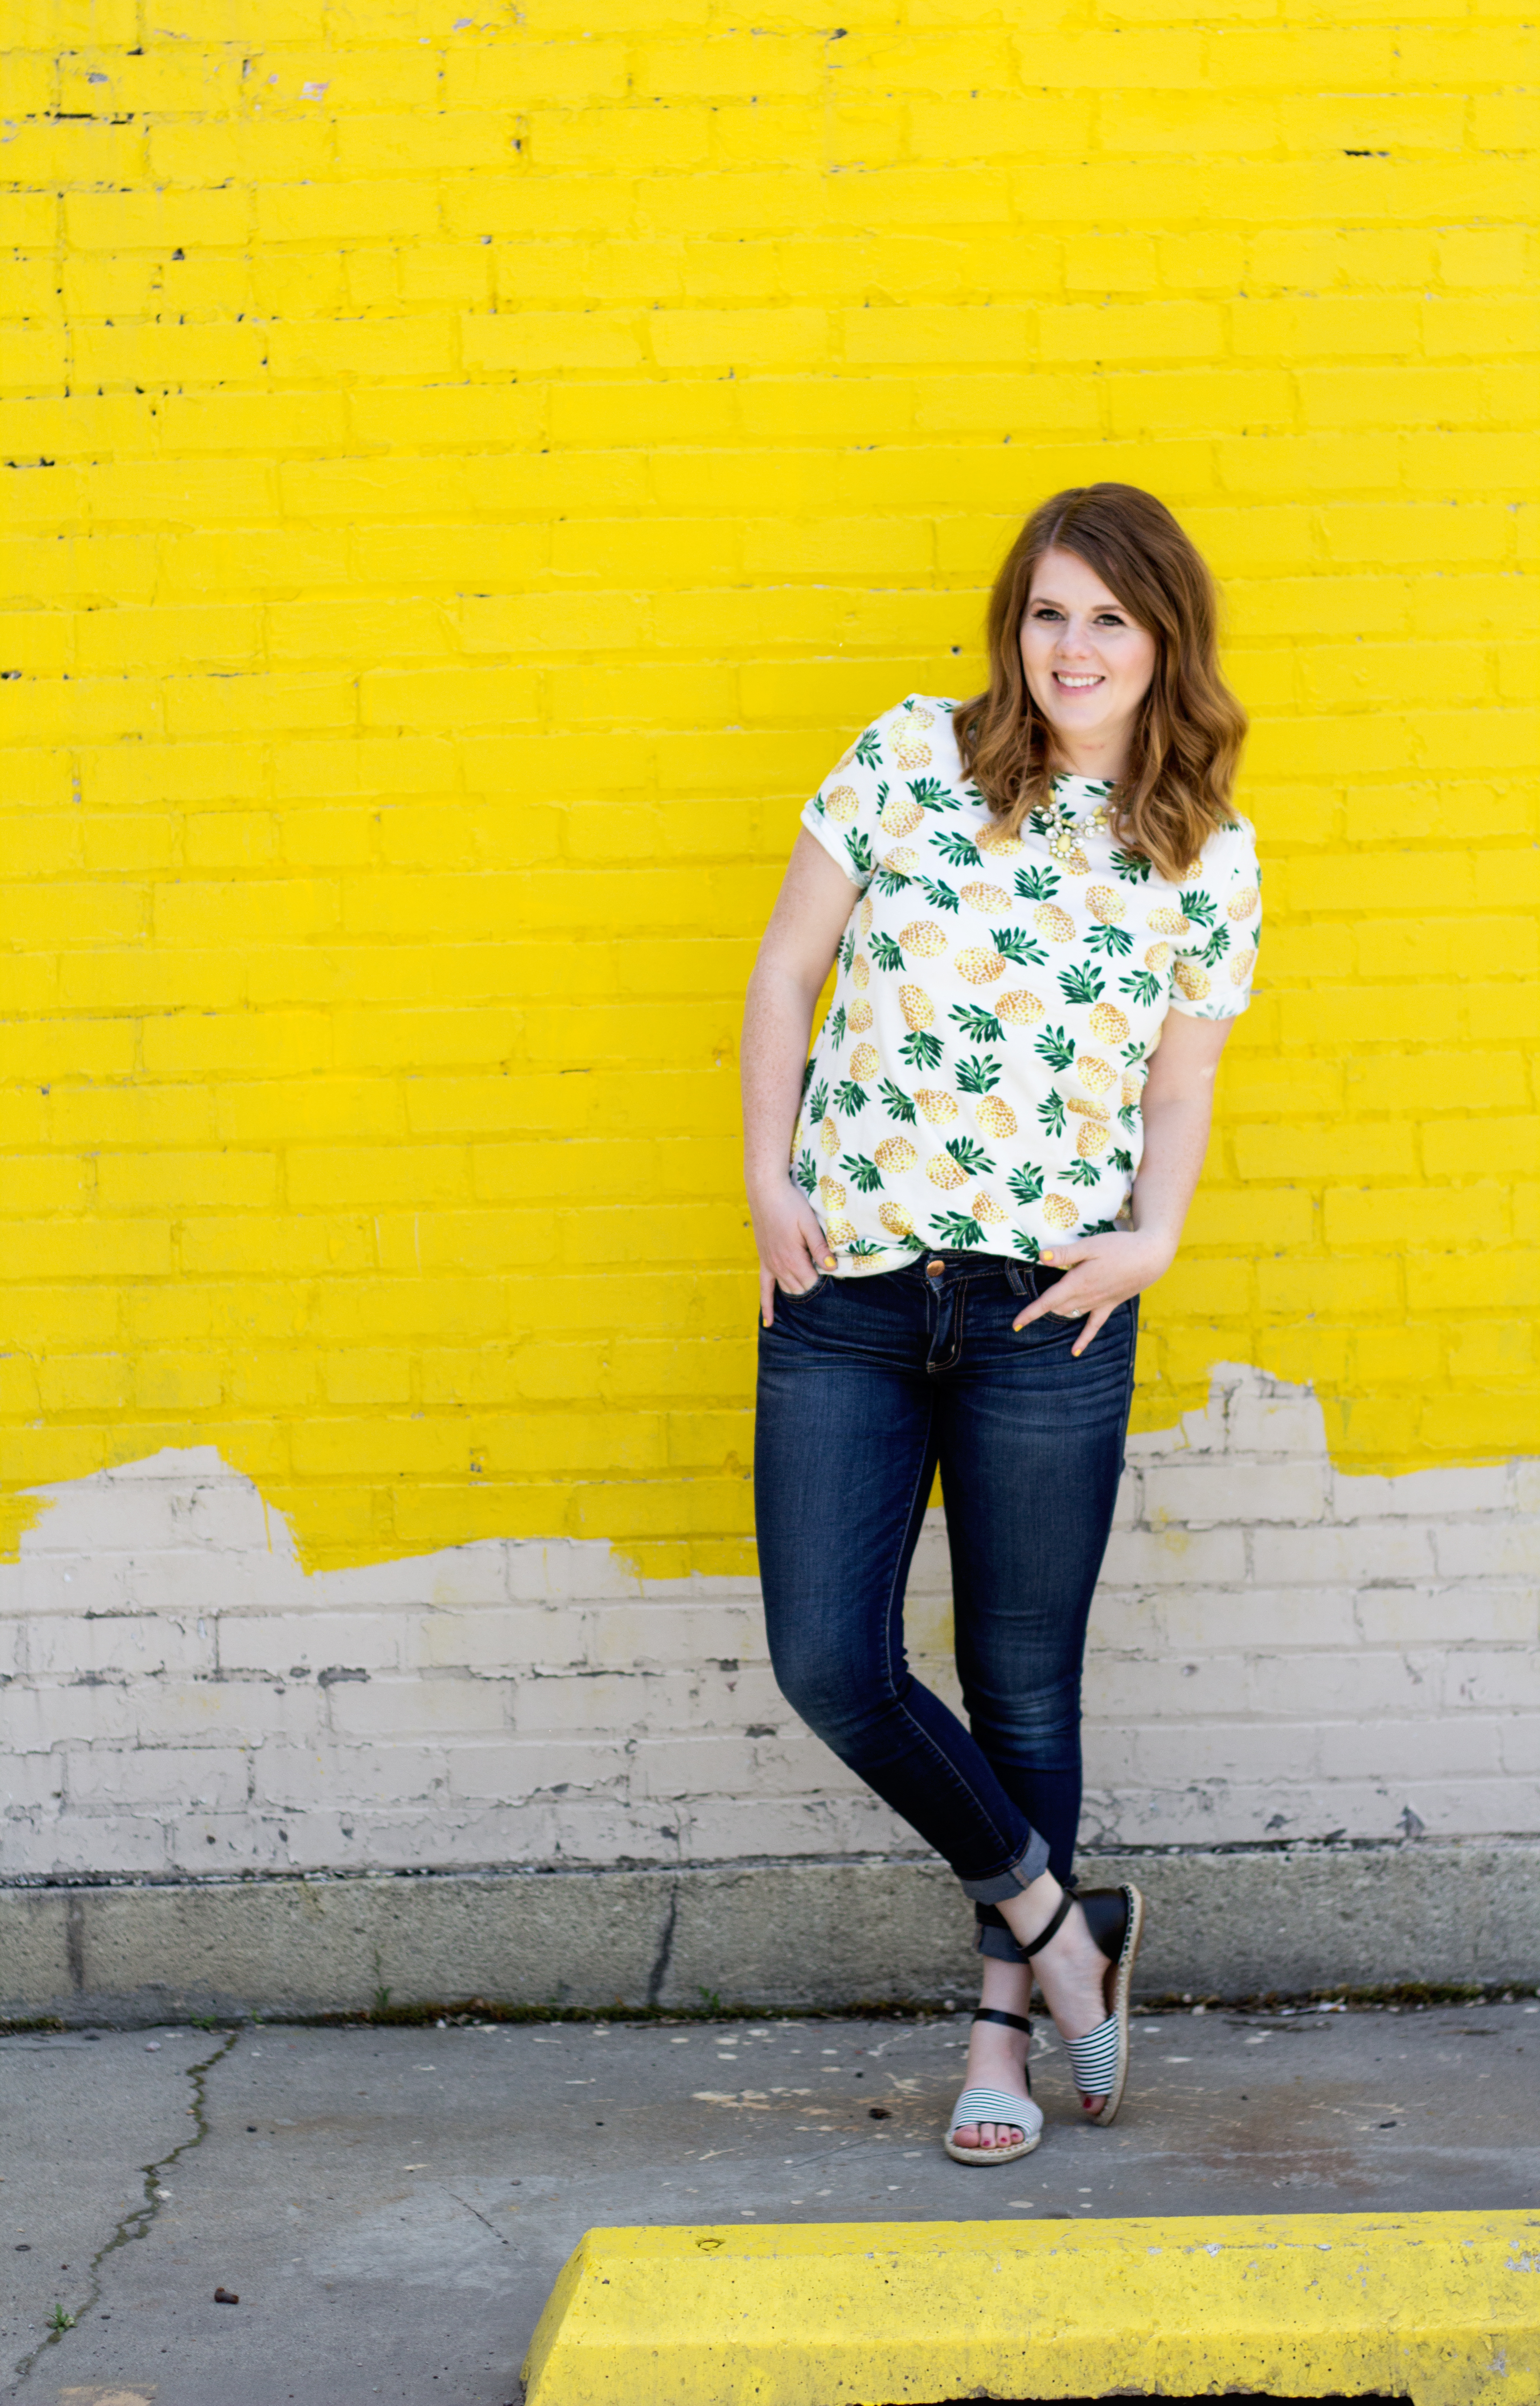 Styling a Pineapple top for summer